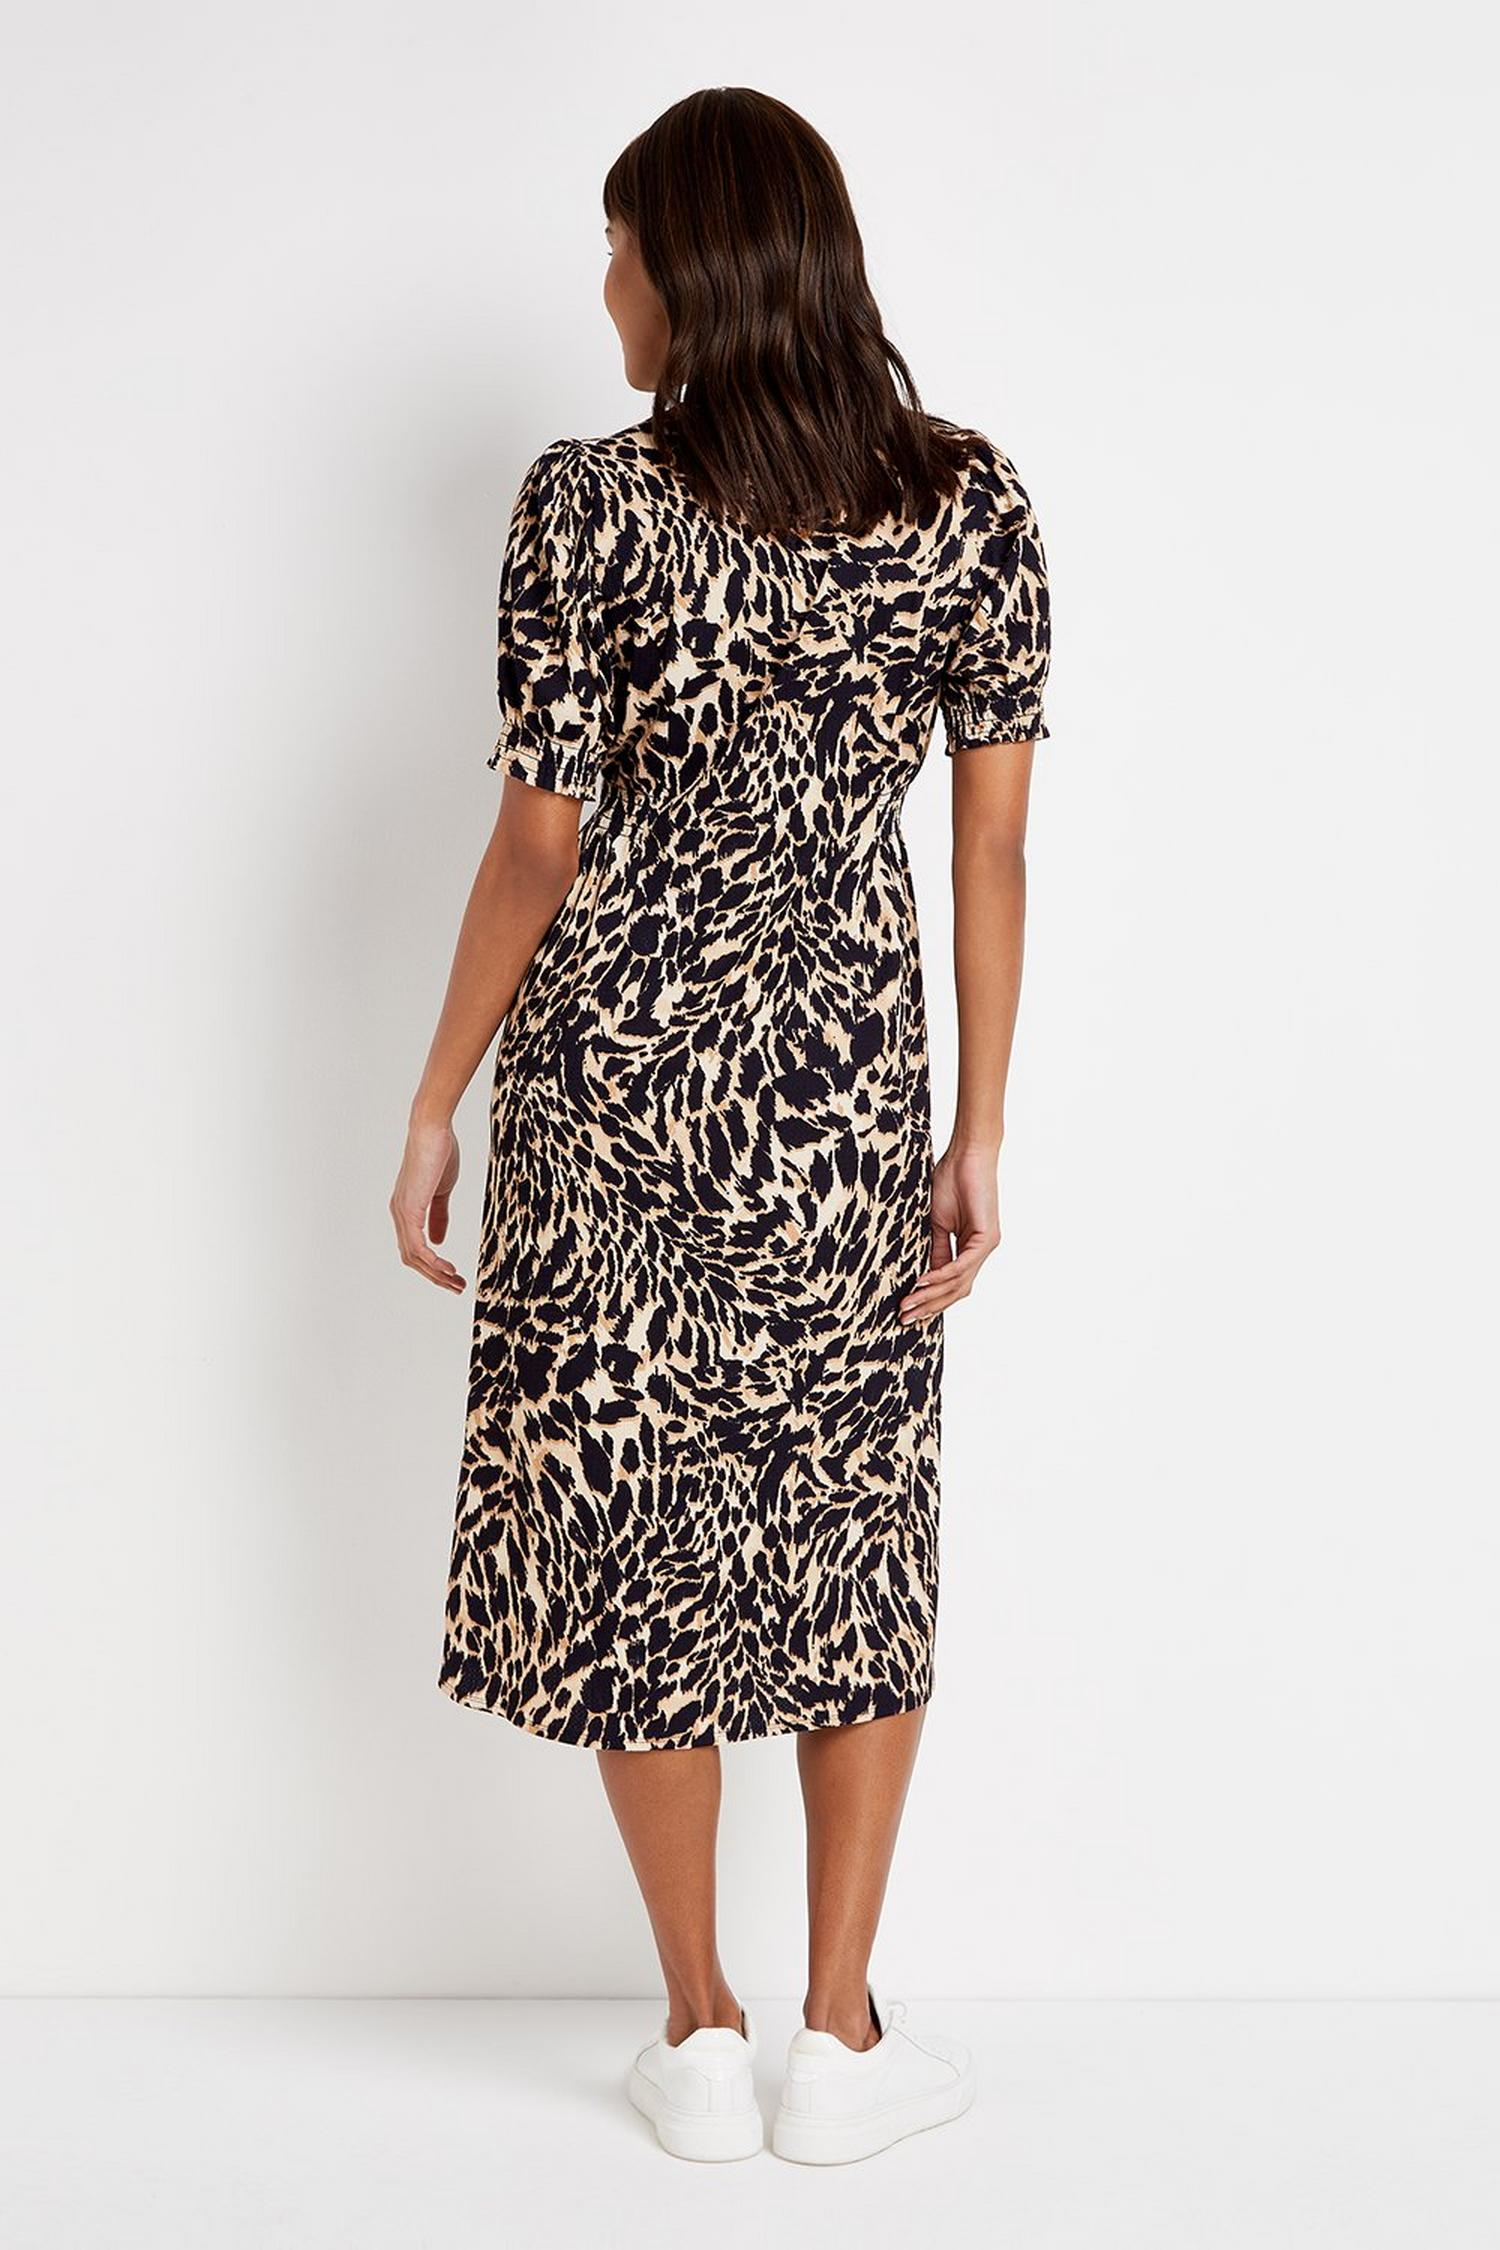 109 TALL Brown Animal Print Midi Dress image number 4